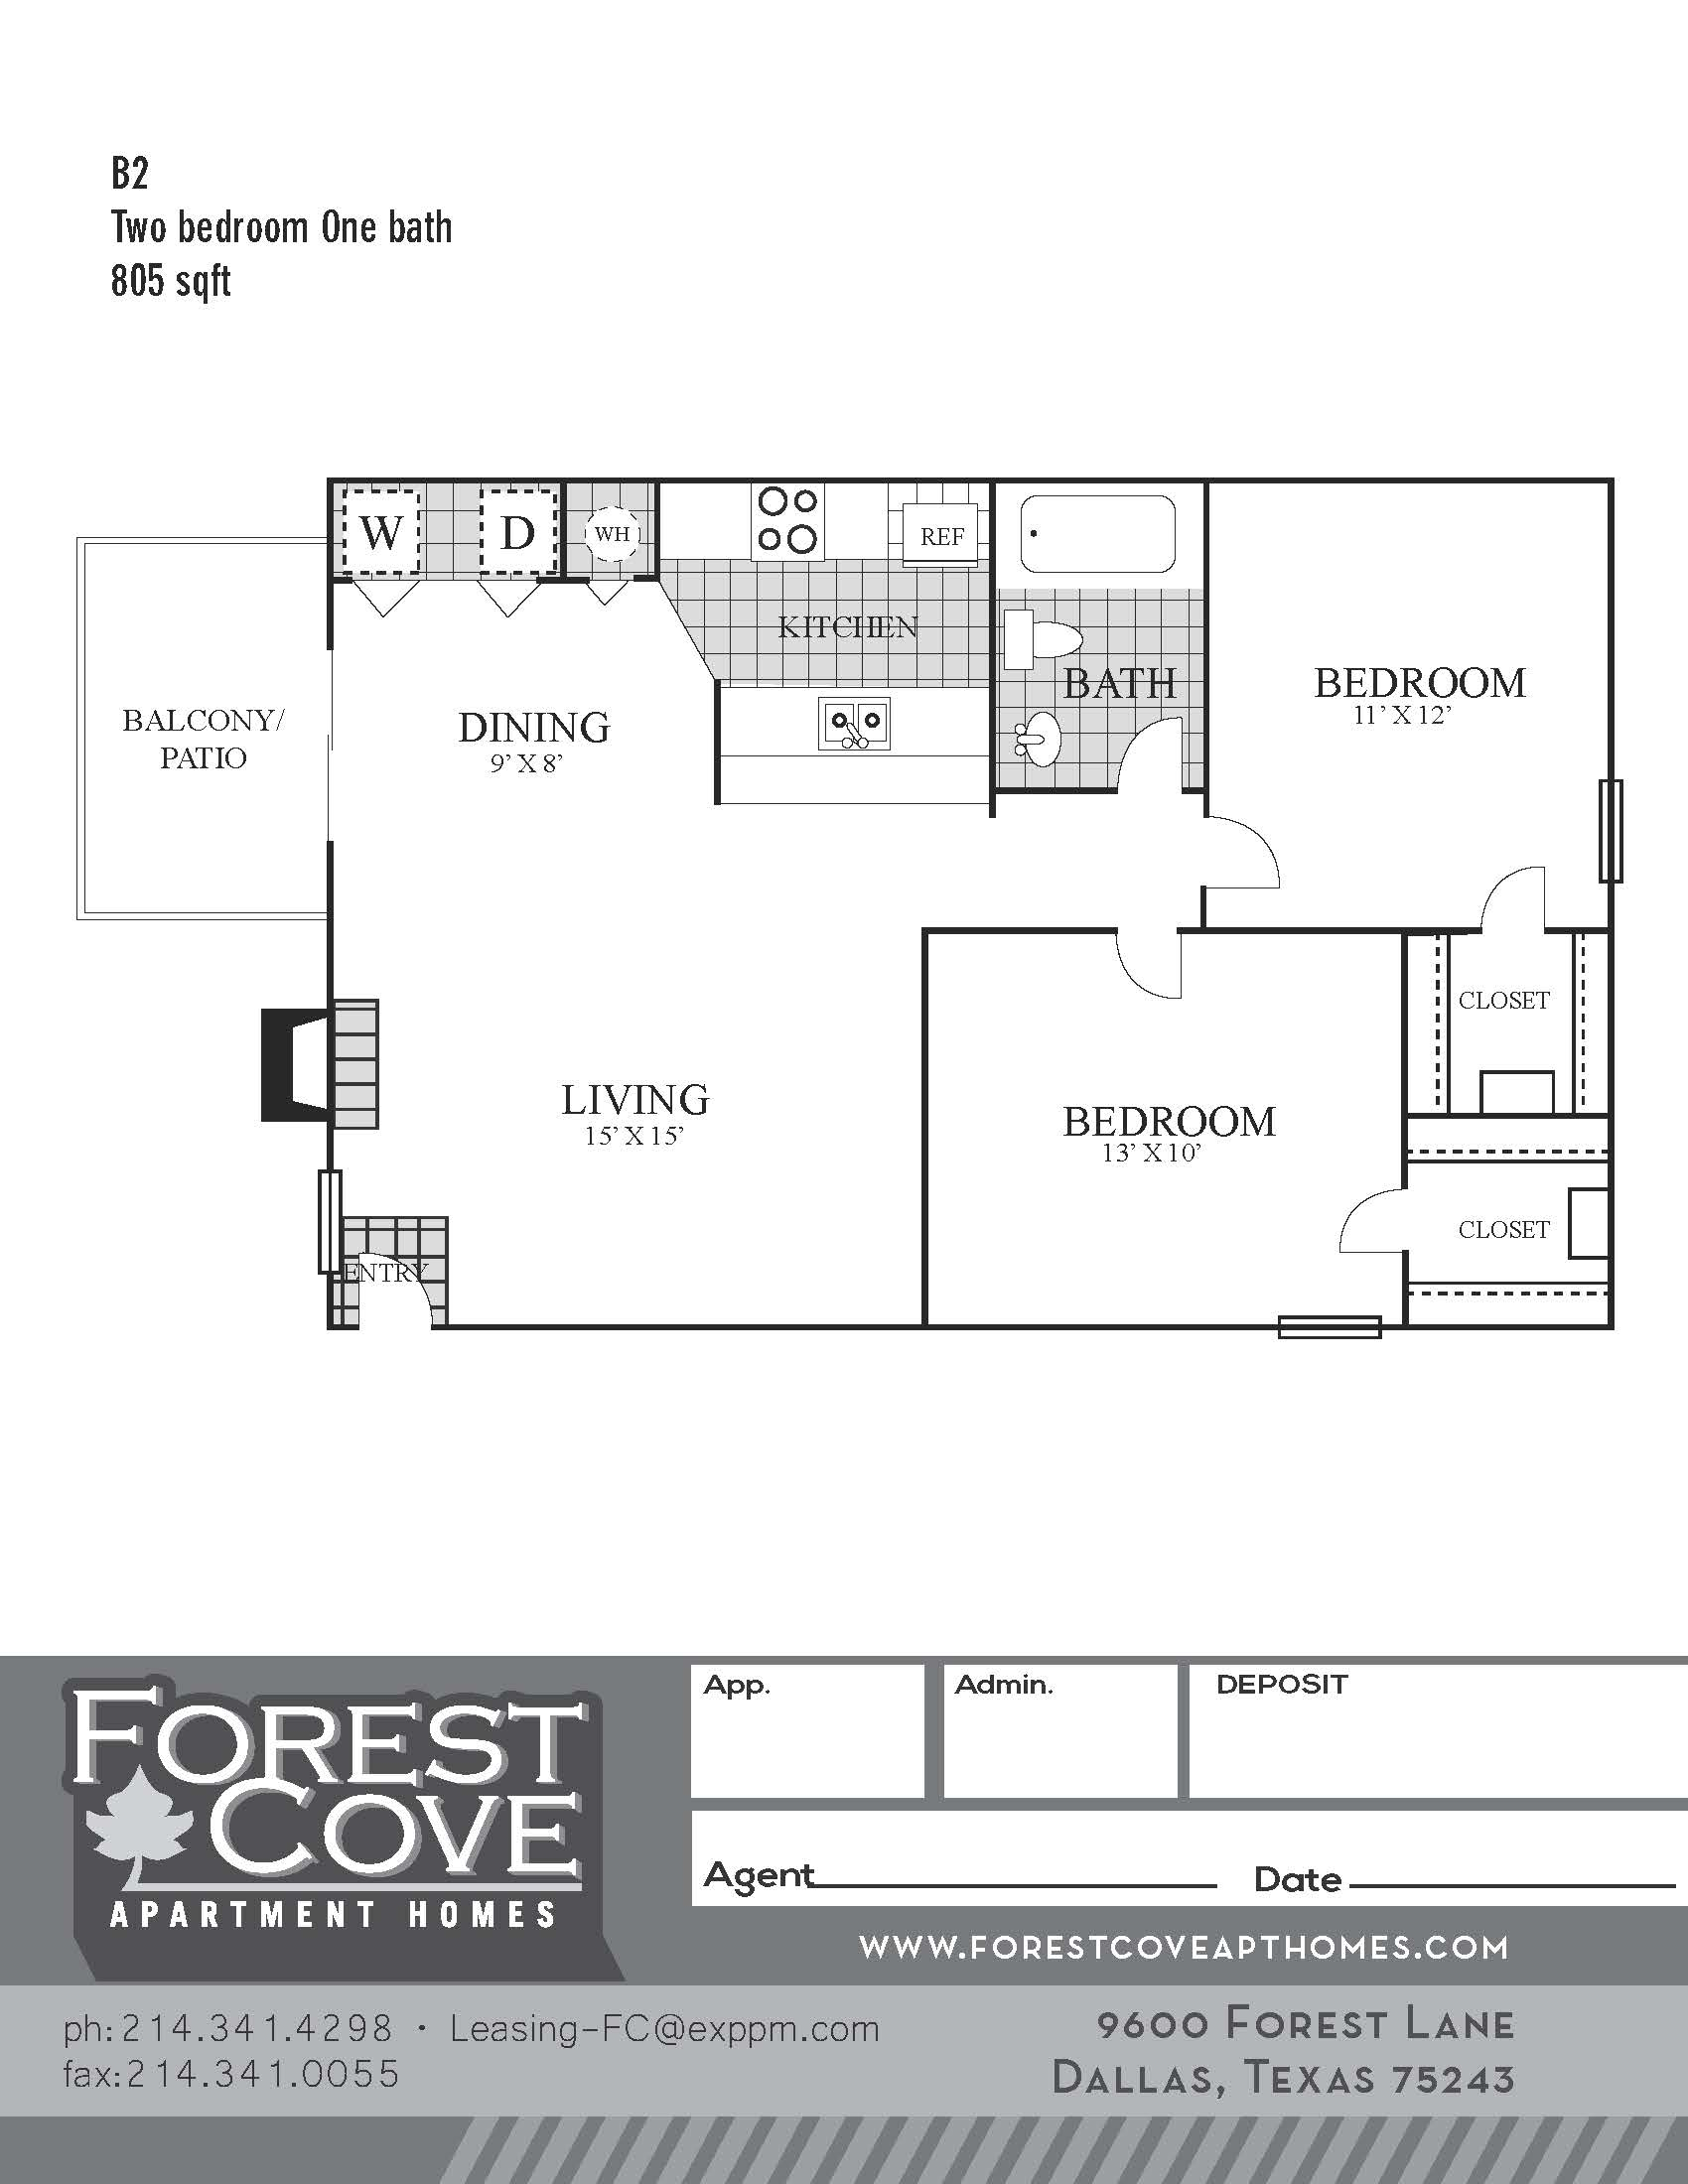 Forest Cove Apartments - Floorplan - B2